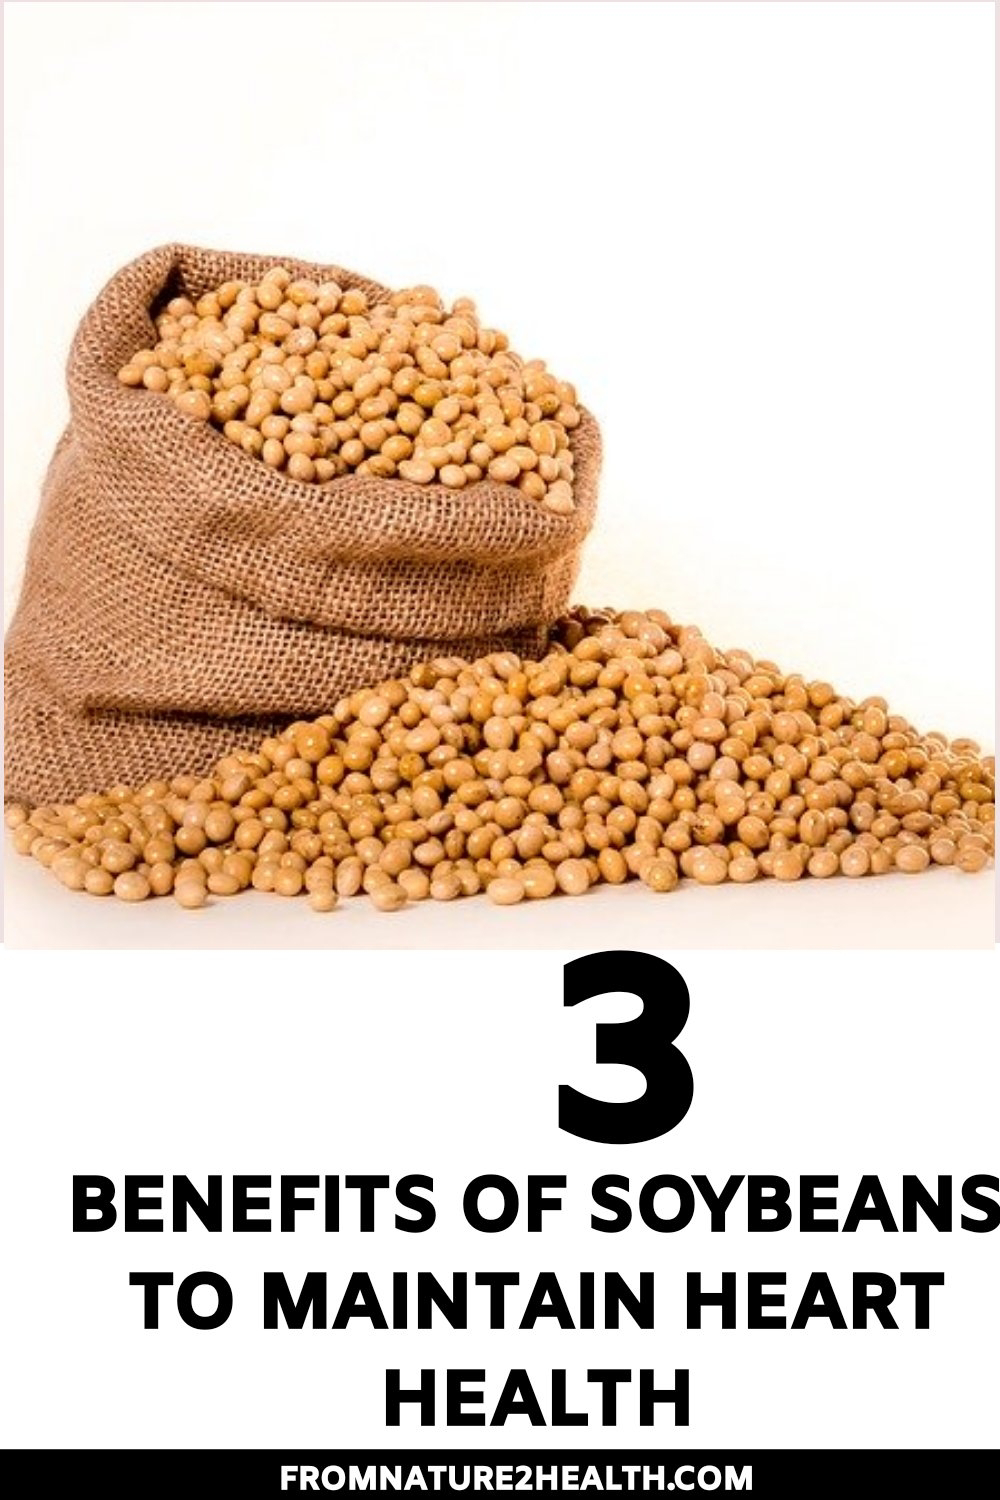 Soybeans can reduce cholesterol, Soybean can prevent heart disease